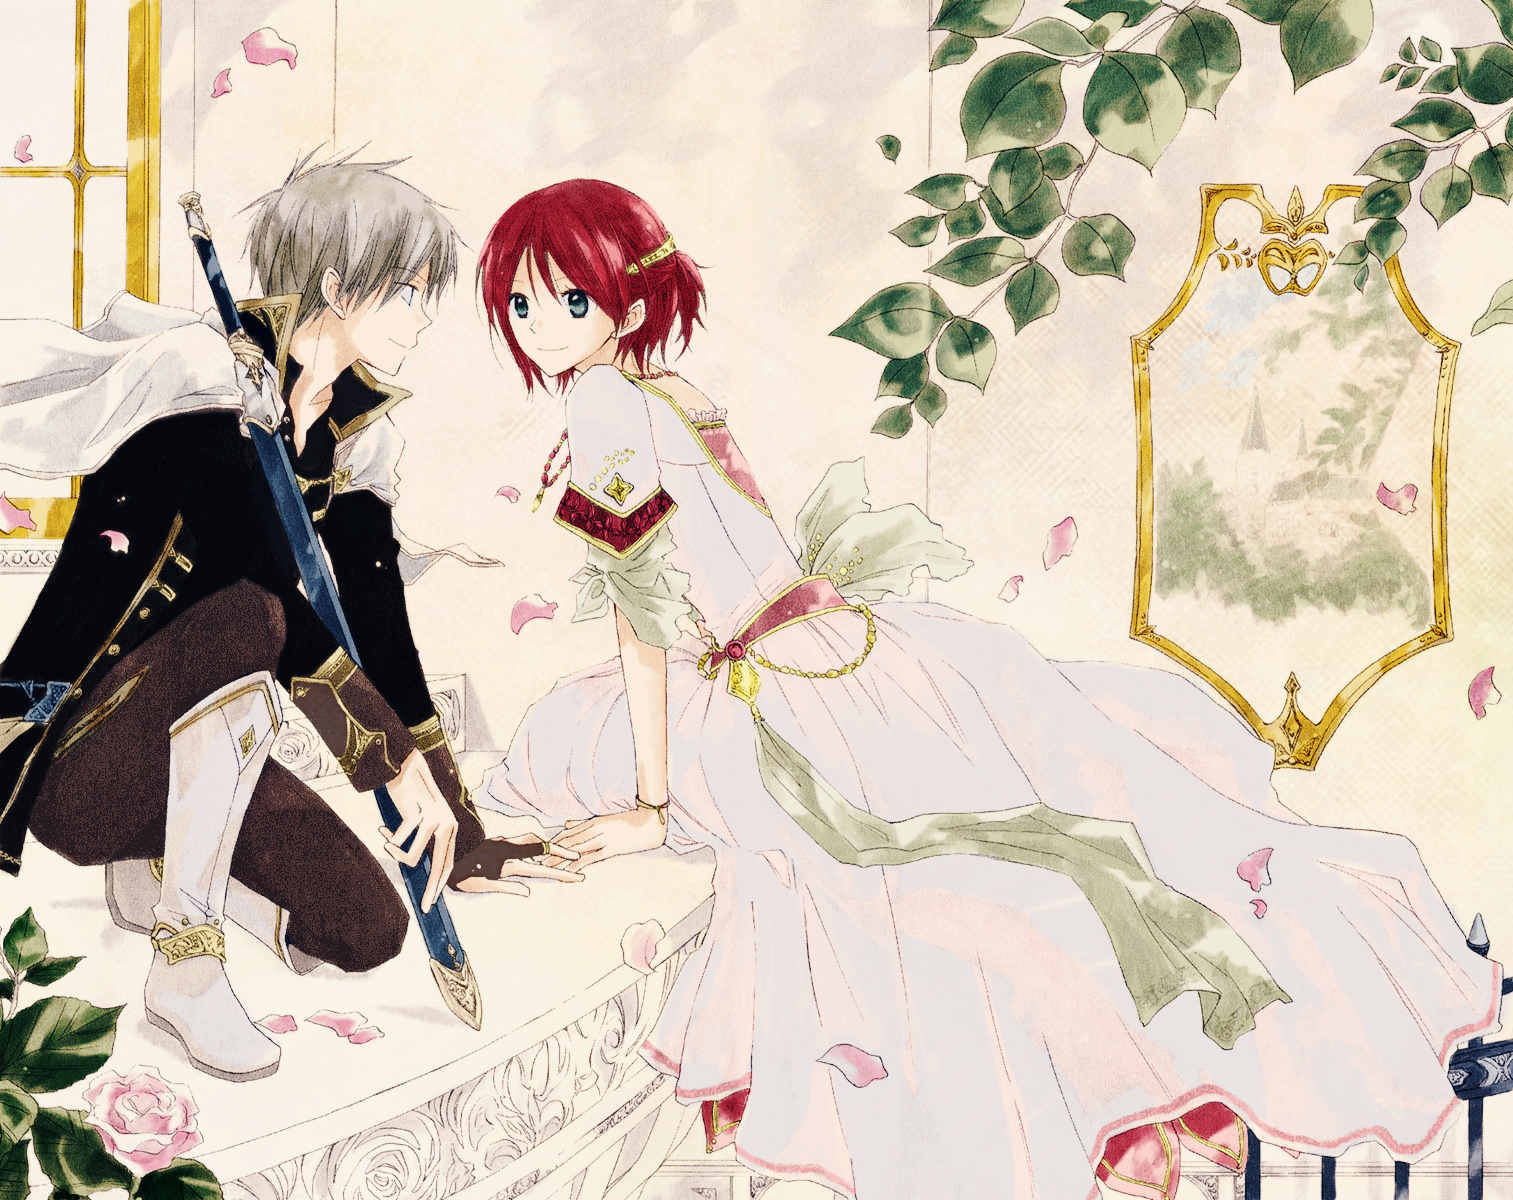 Romance Manga 17 - snow white with the red hair